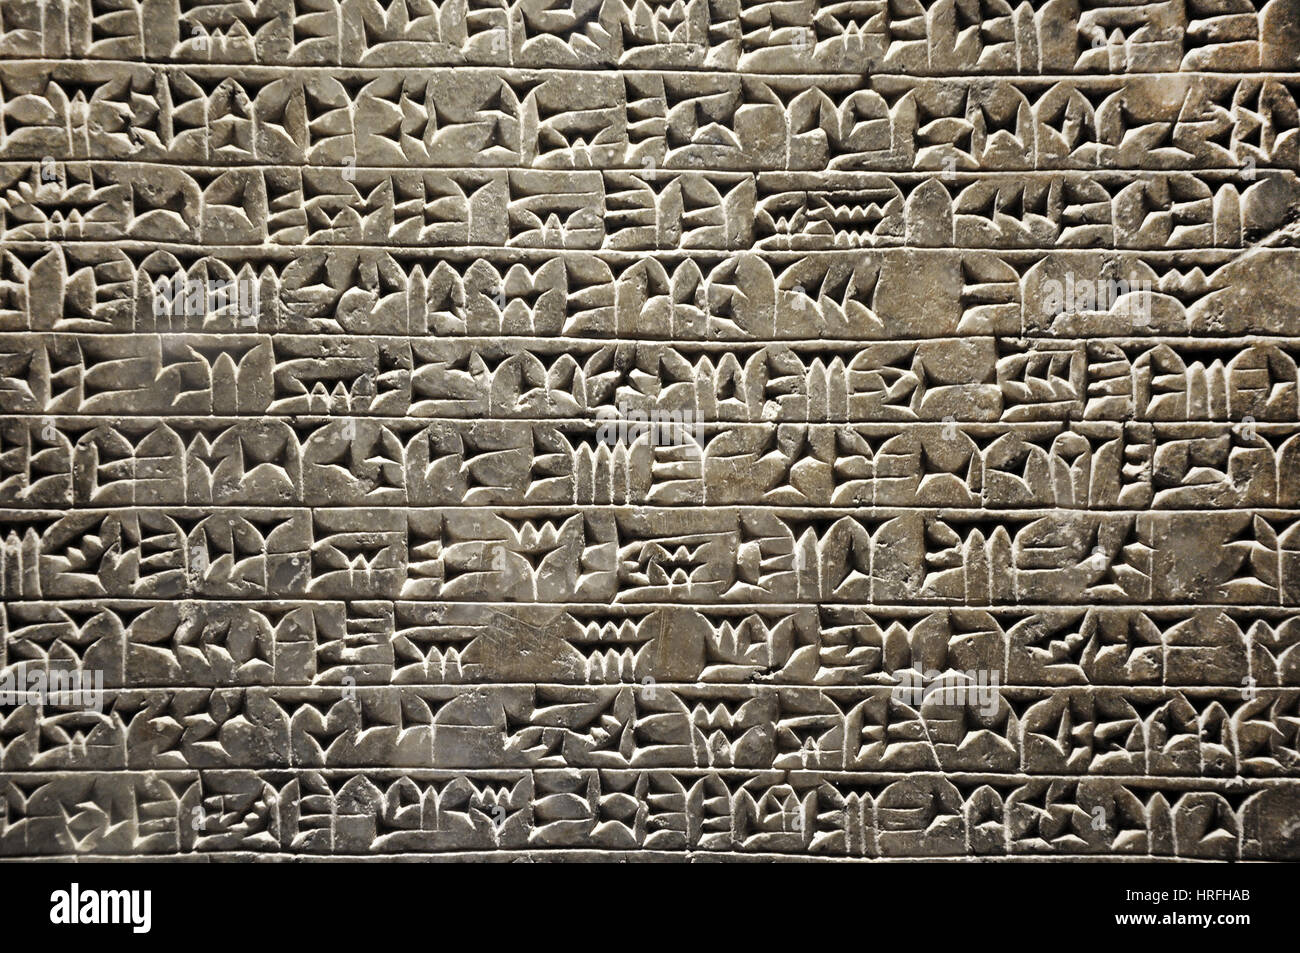 Cuneiform writing of the ancient Sumerian or Assyrian ...